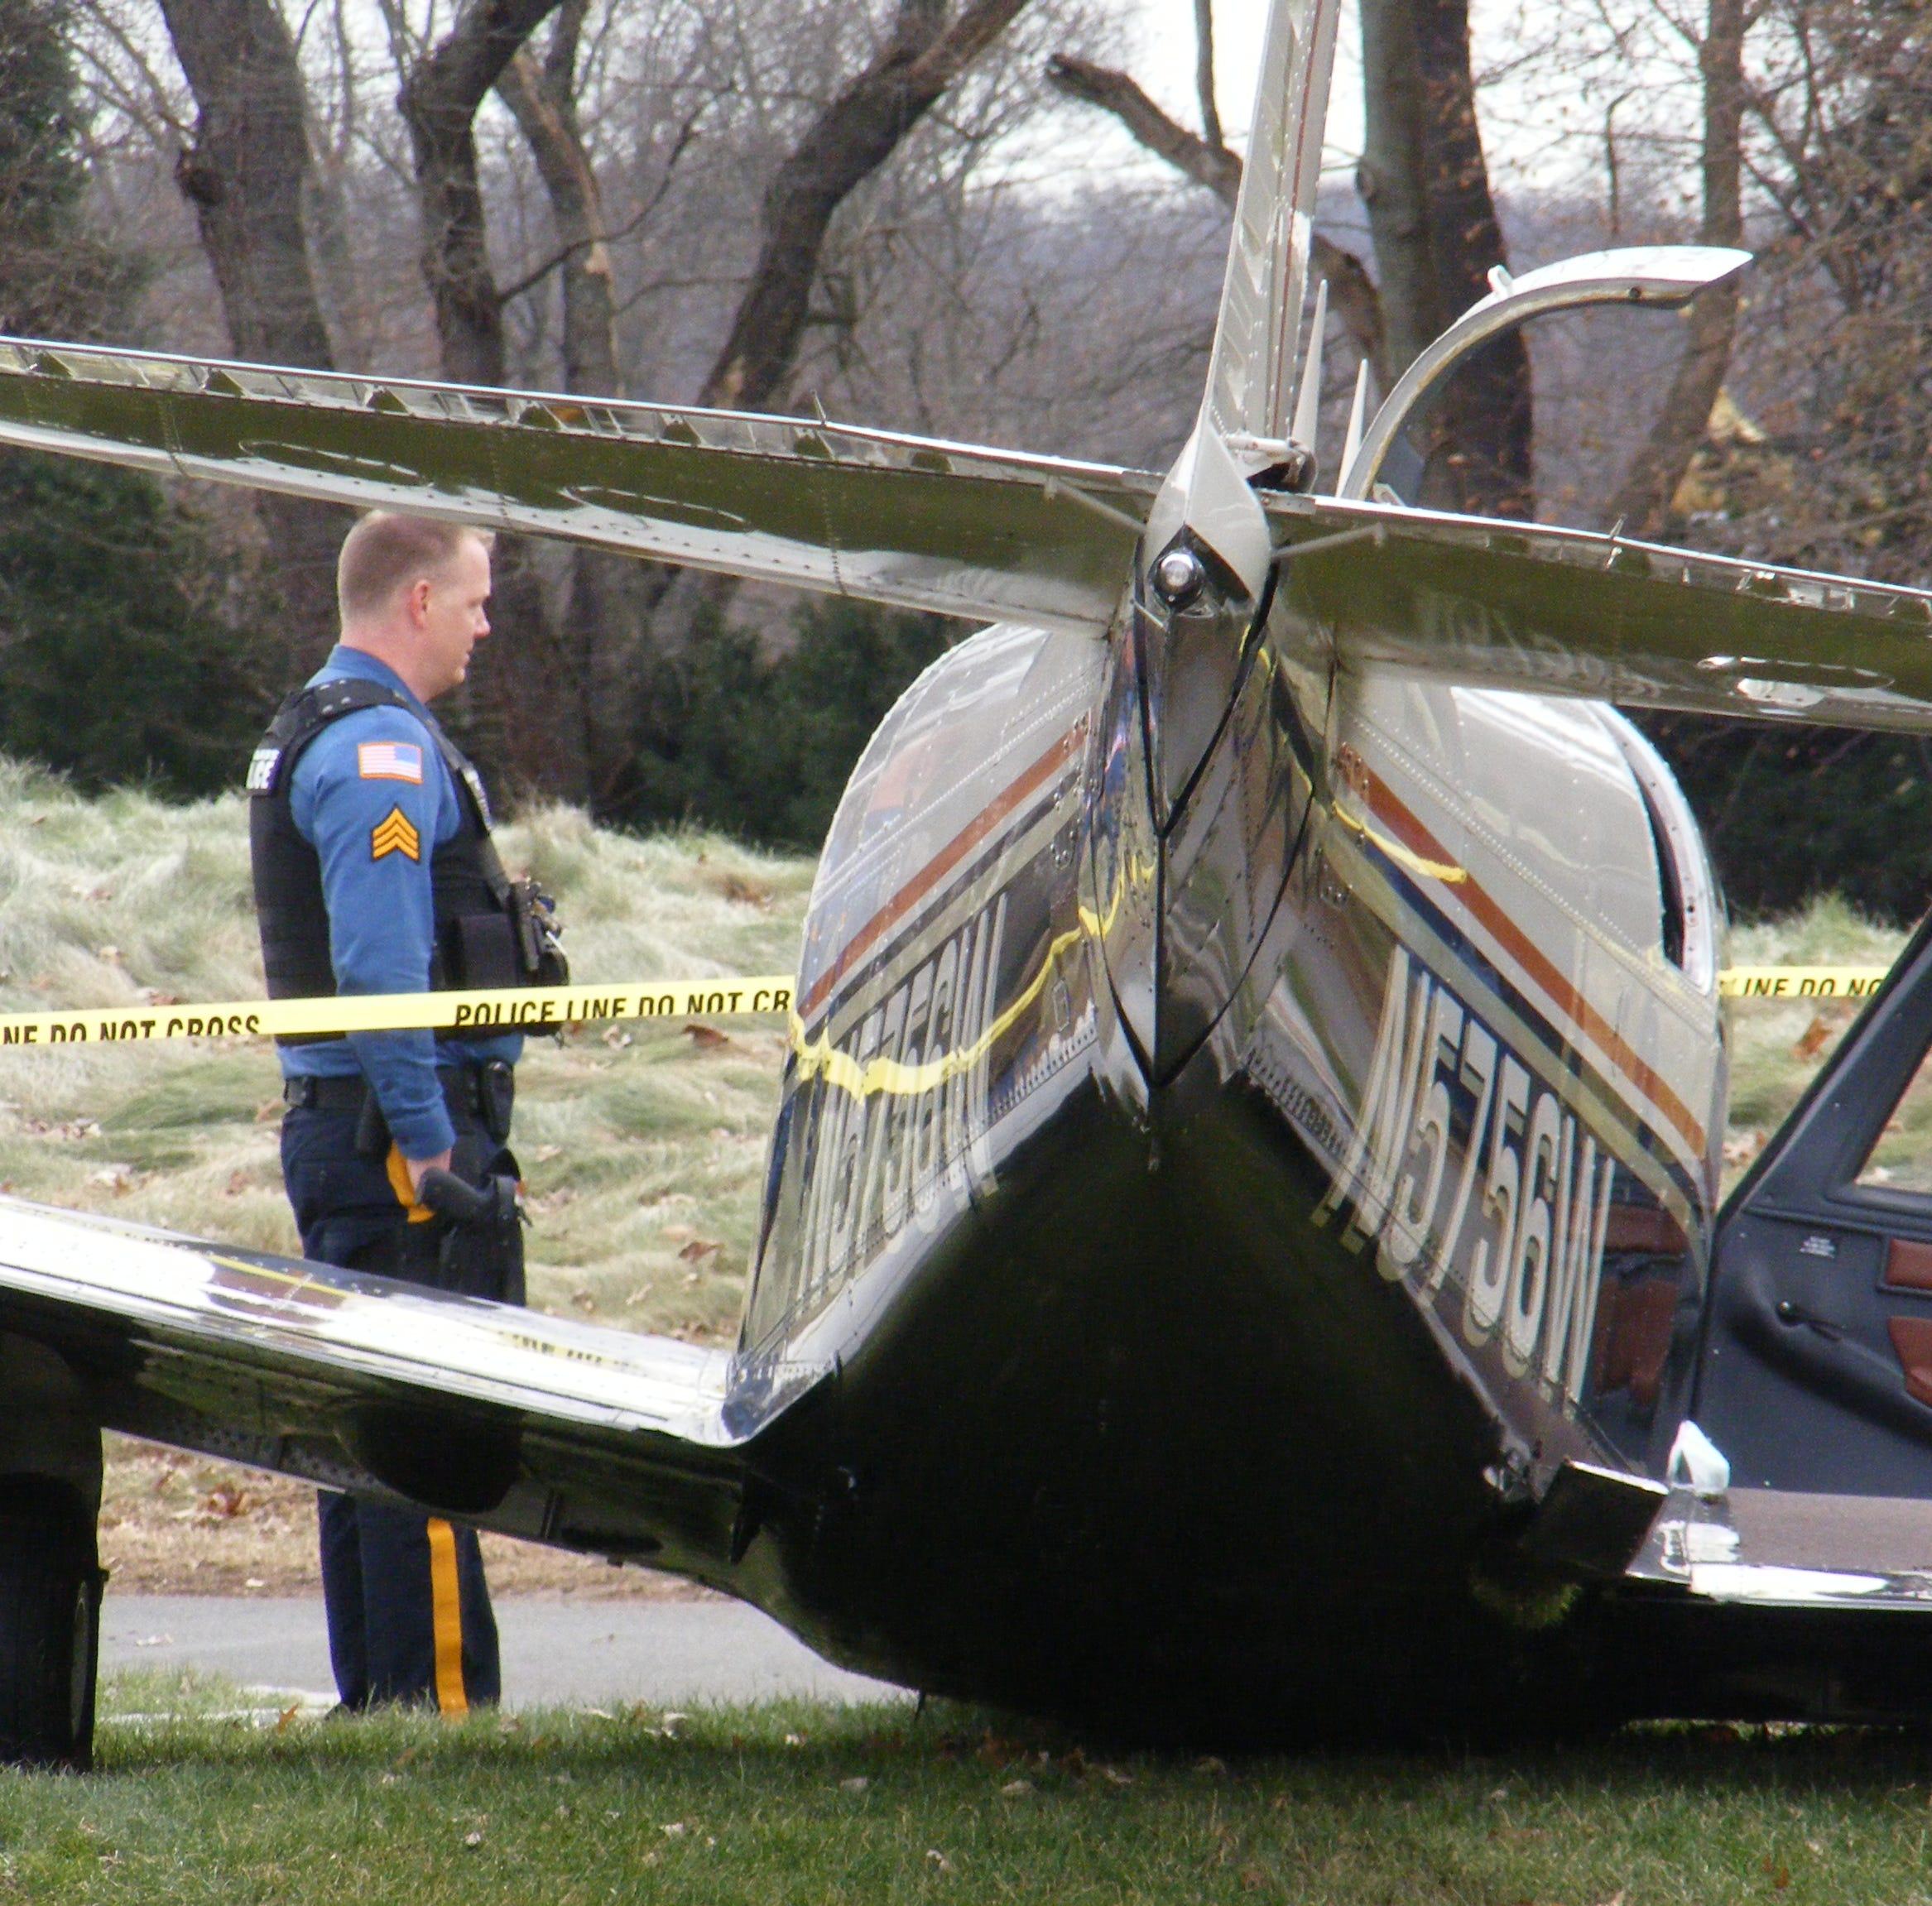 Plane makes emergency landing on Paramus Golf Course